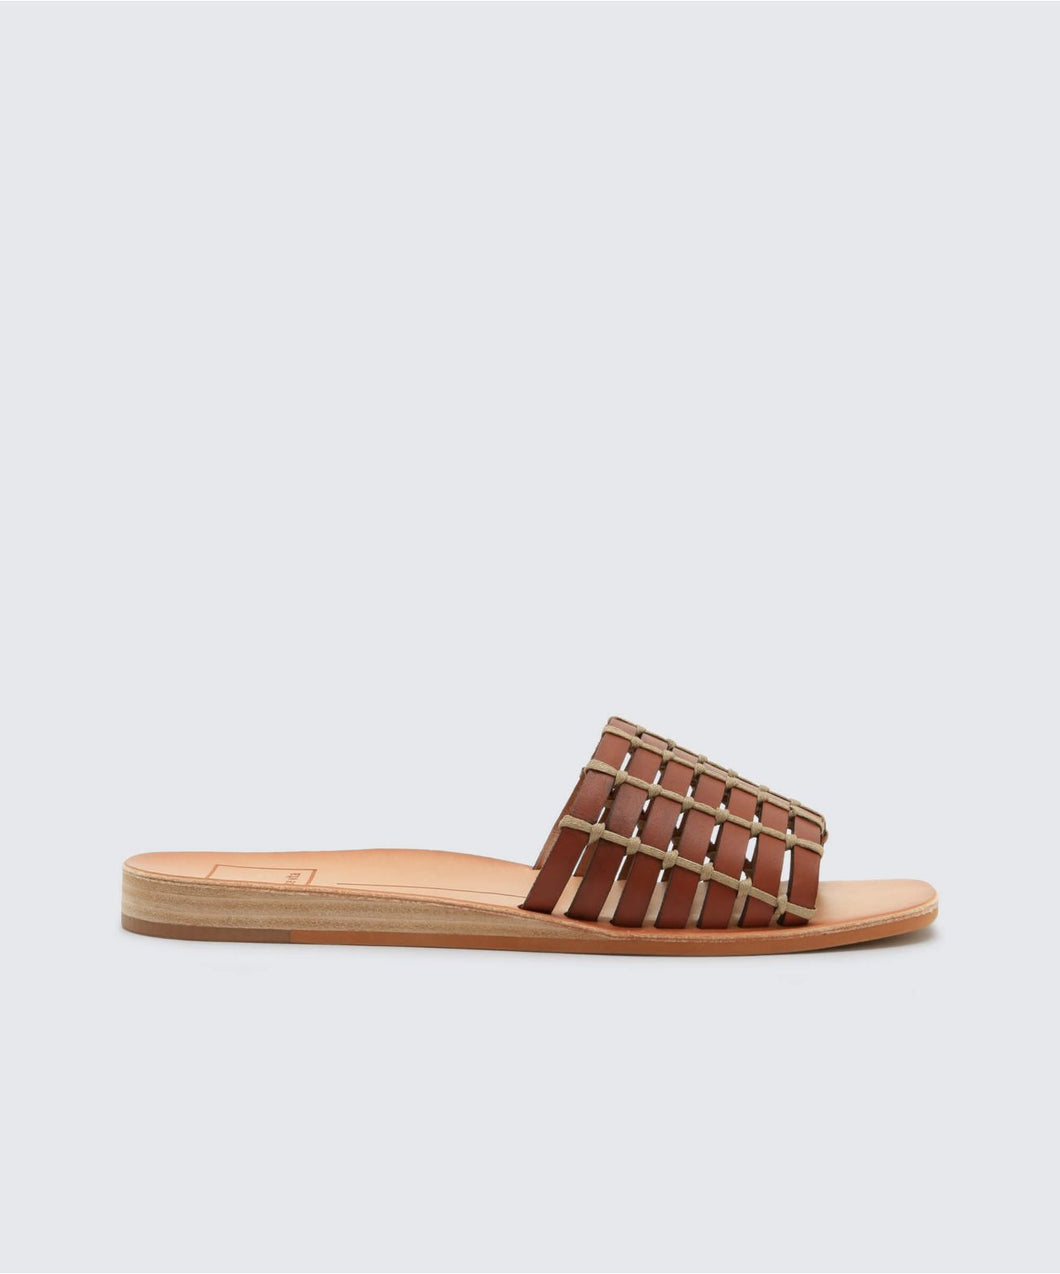 COLSEN SANDALS IN BROWN -   Dolce Vita